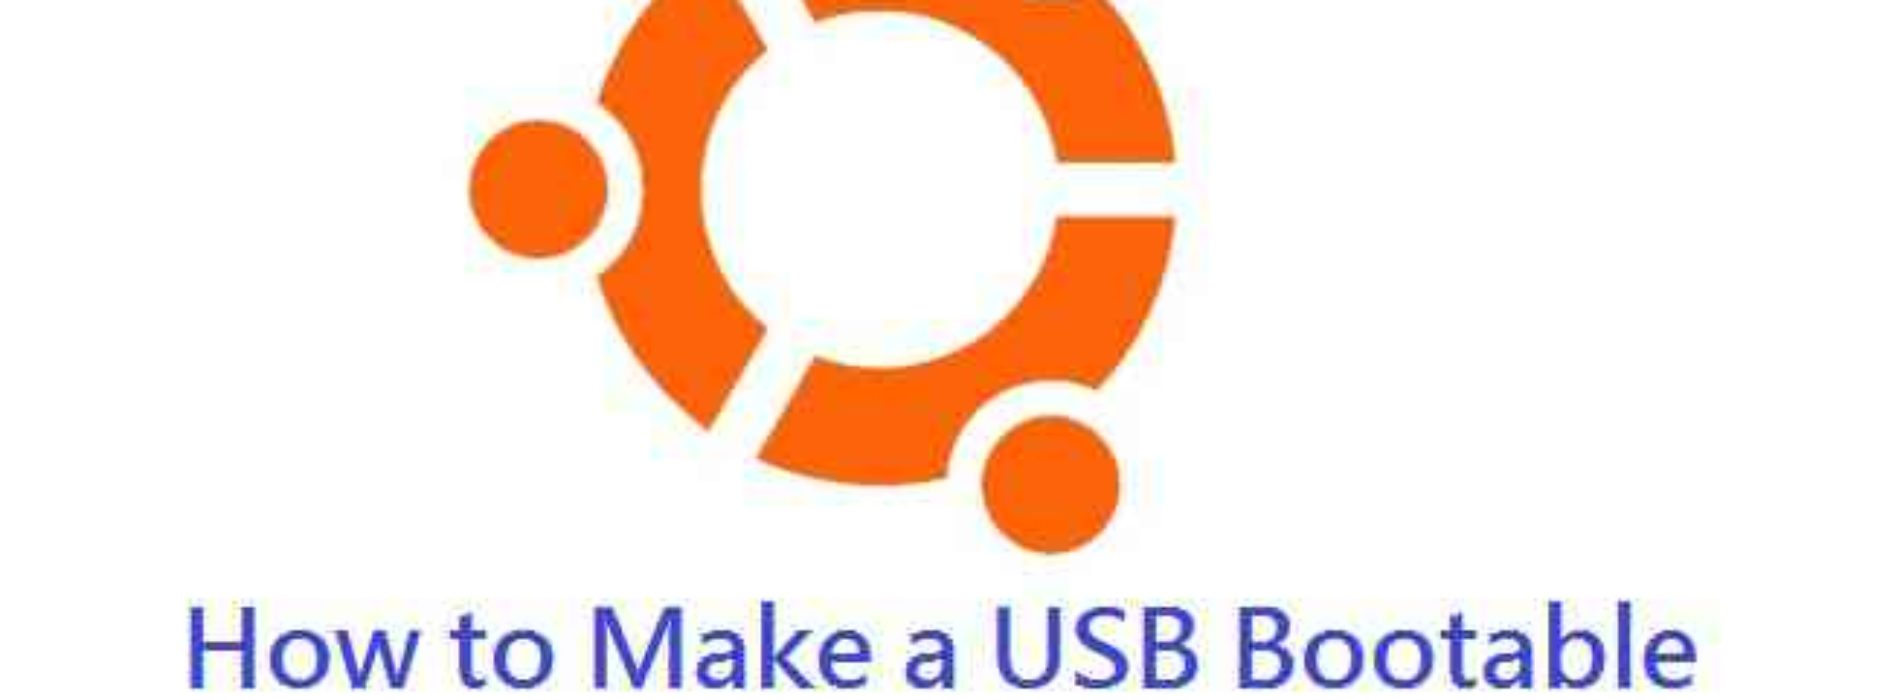 How to Create a USB Bootable Ubuntu Linux Live Disk